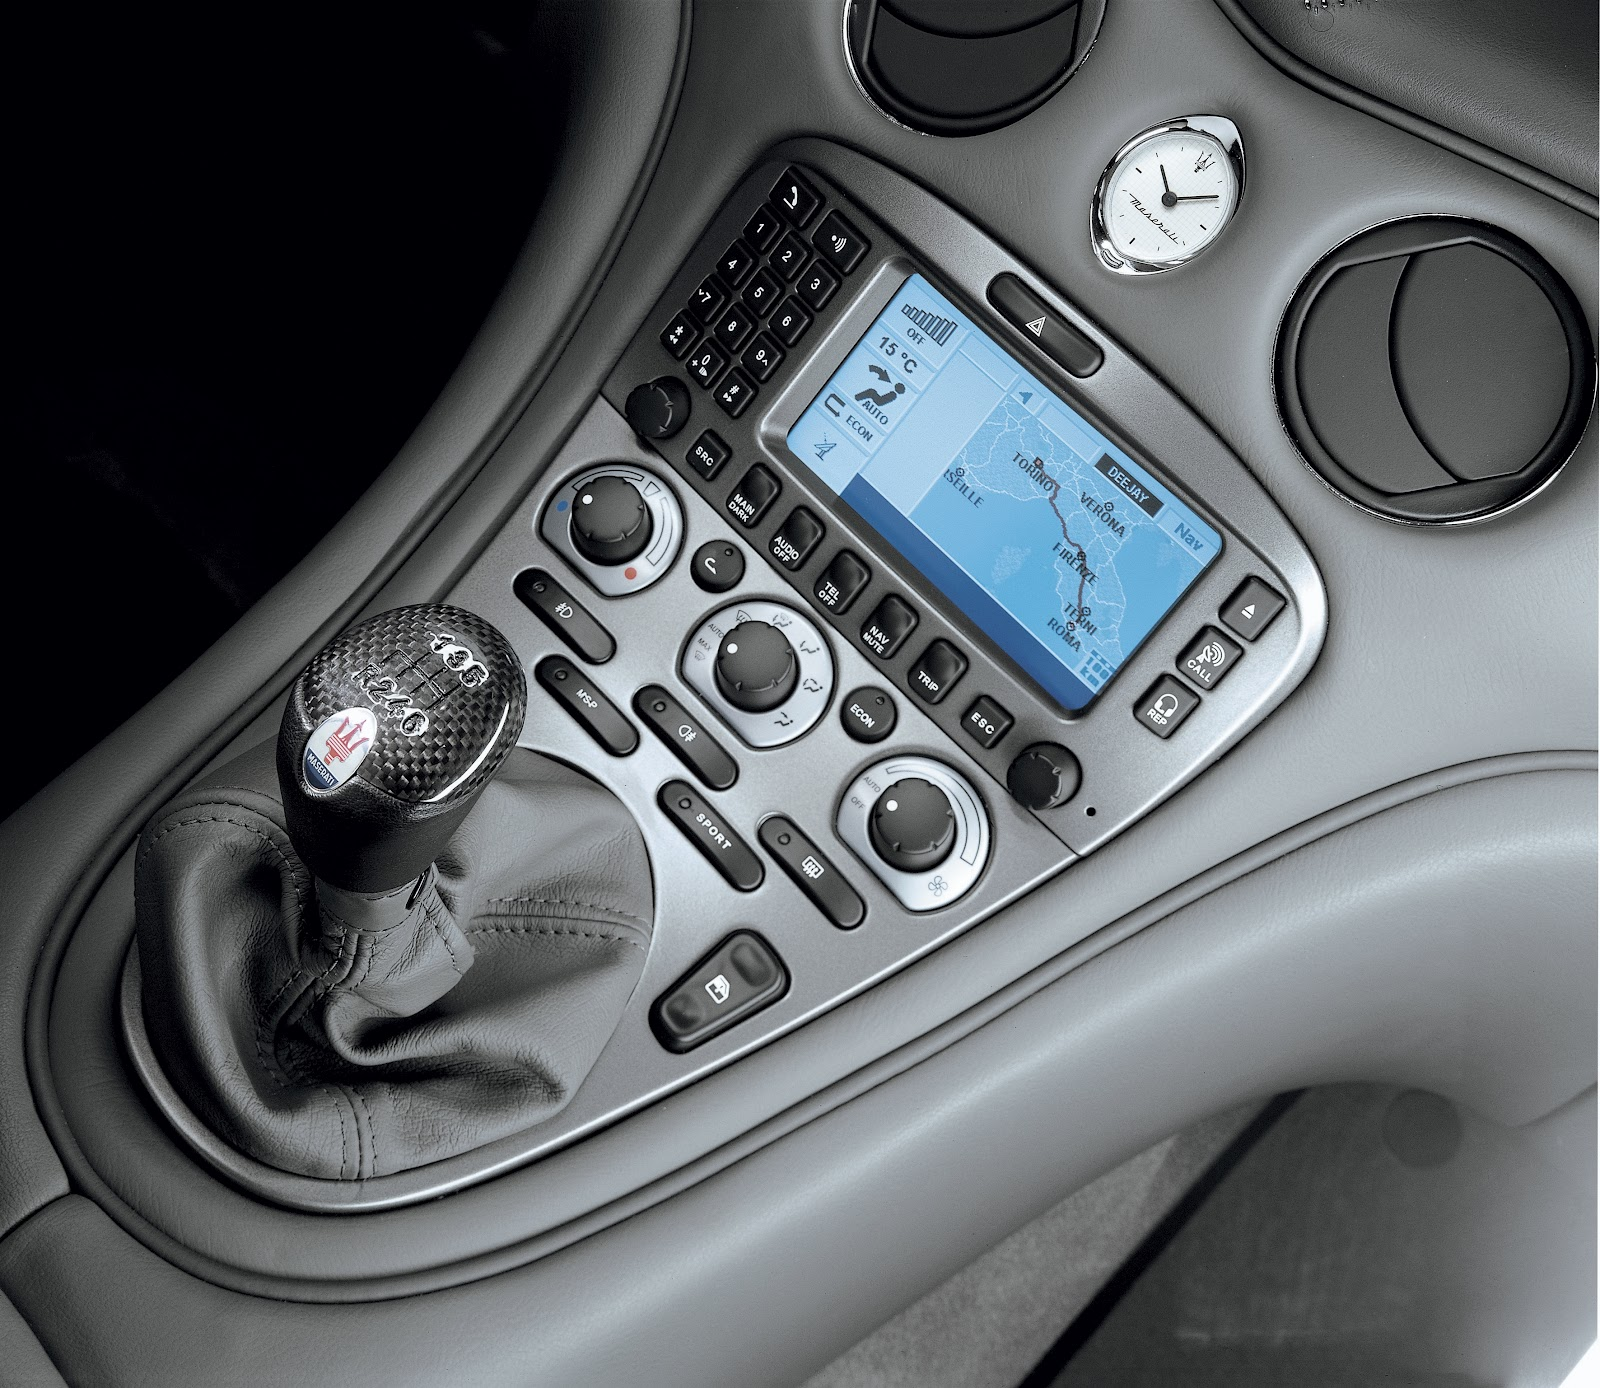 http://1.bp.blogspot.com/-xvcbnISrFjg/T6q8TqOGDyI/AAAAAAAAAEY/OCXqPCiGQLE/s1600/cars_gear_car_dashboard_stick_shift_desktop_3543x3073_wallpaper-340658.jpg